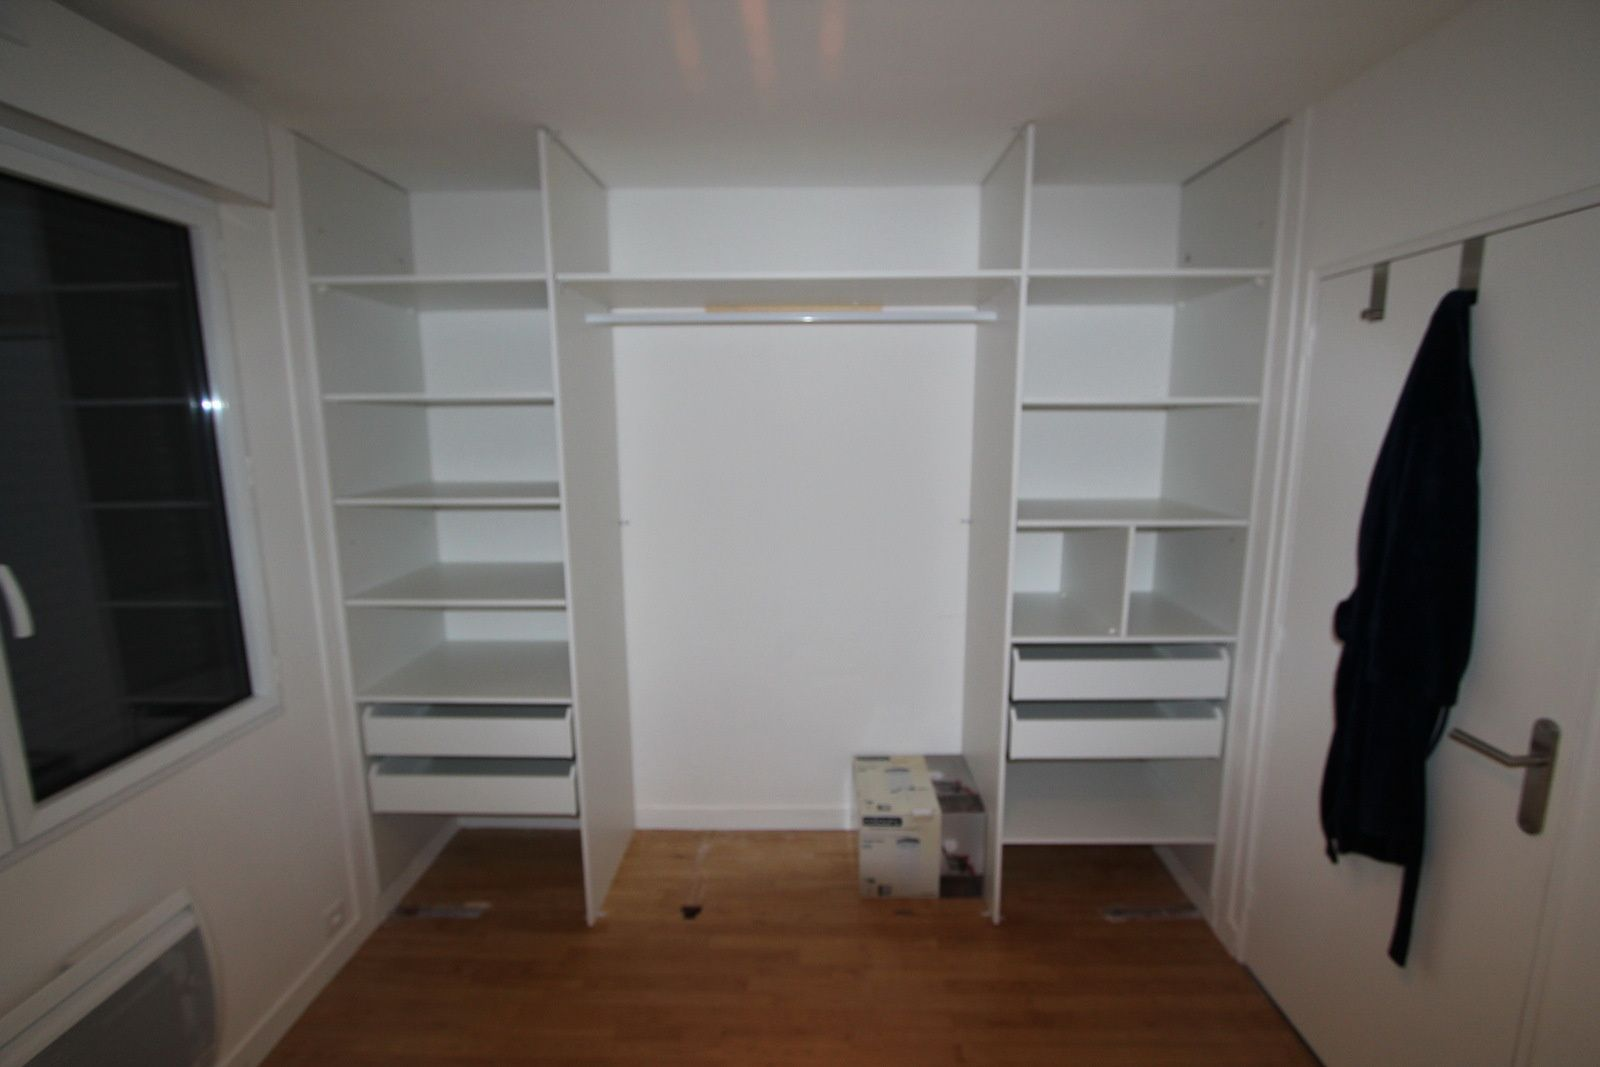 Am nagement du dressing r novation en ille et vilaine - Ikea amenagement dressing ...